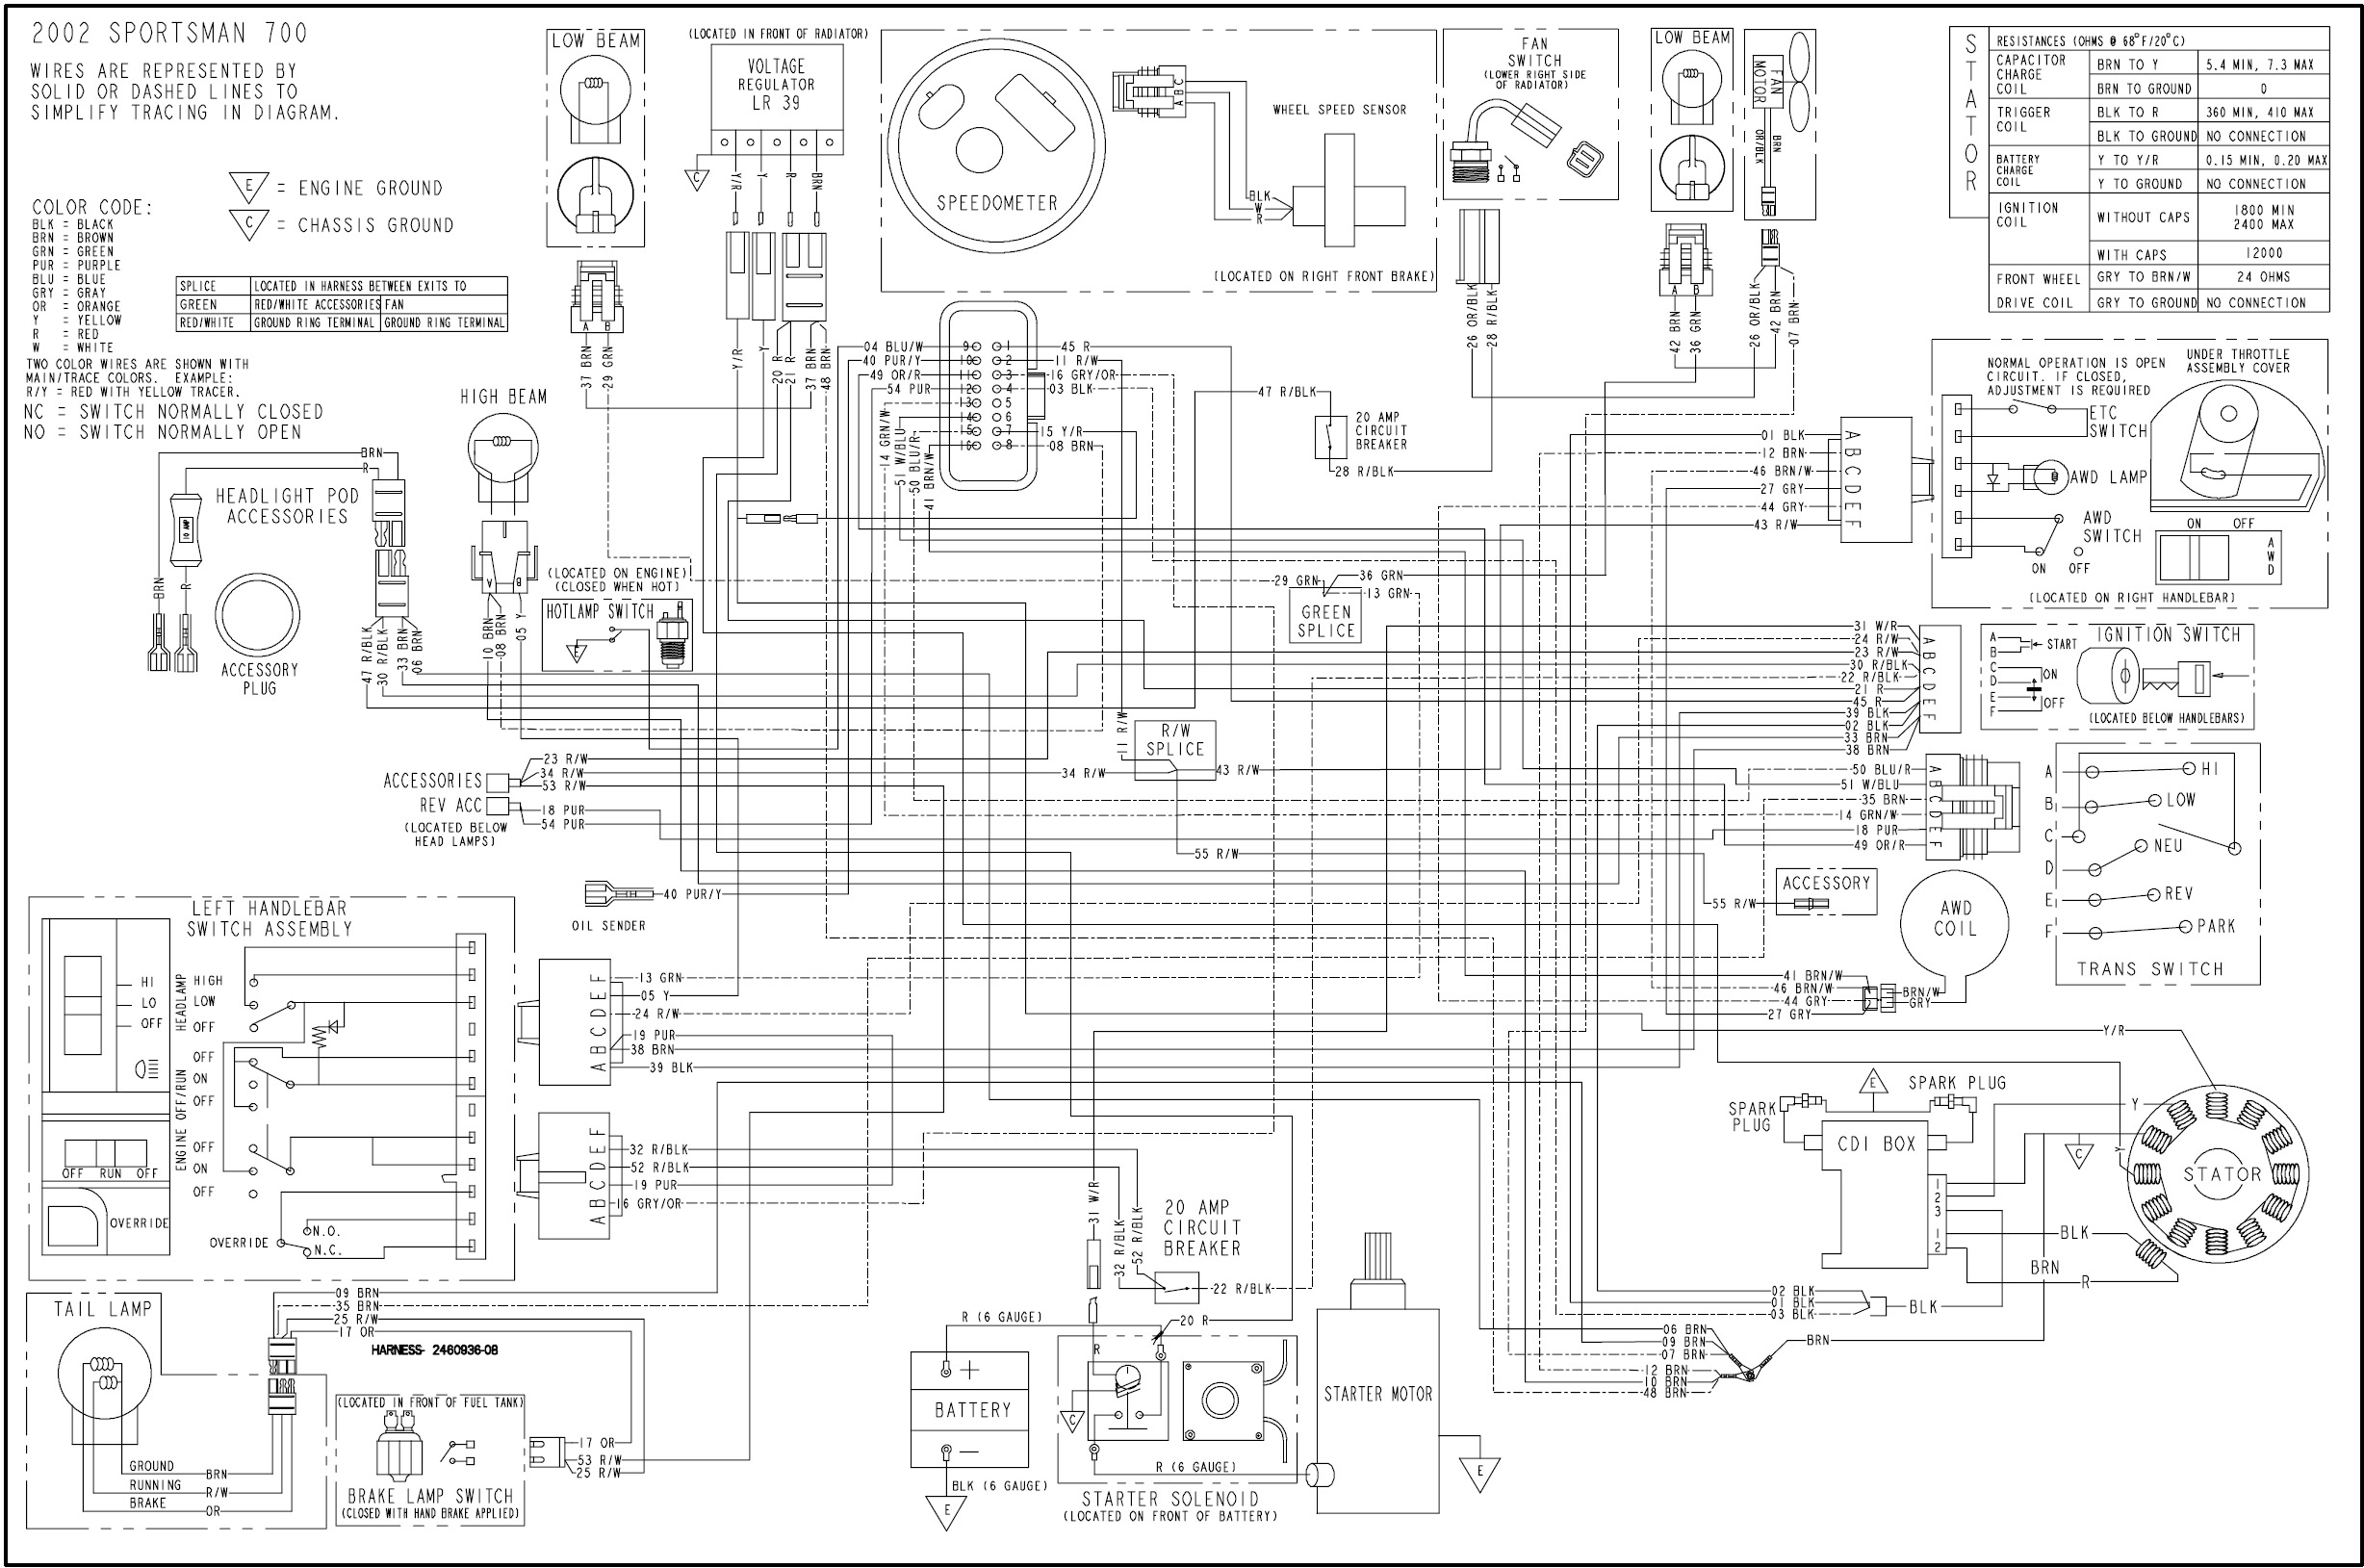 DIAGRAM] 2005 Polaris Sportsman 700 Wiring Diagram FULL Version HD Quality Wiring  Diagram - ACASHDRAW.JOBAVOUS68.FRJobavous68